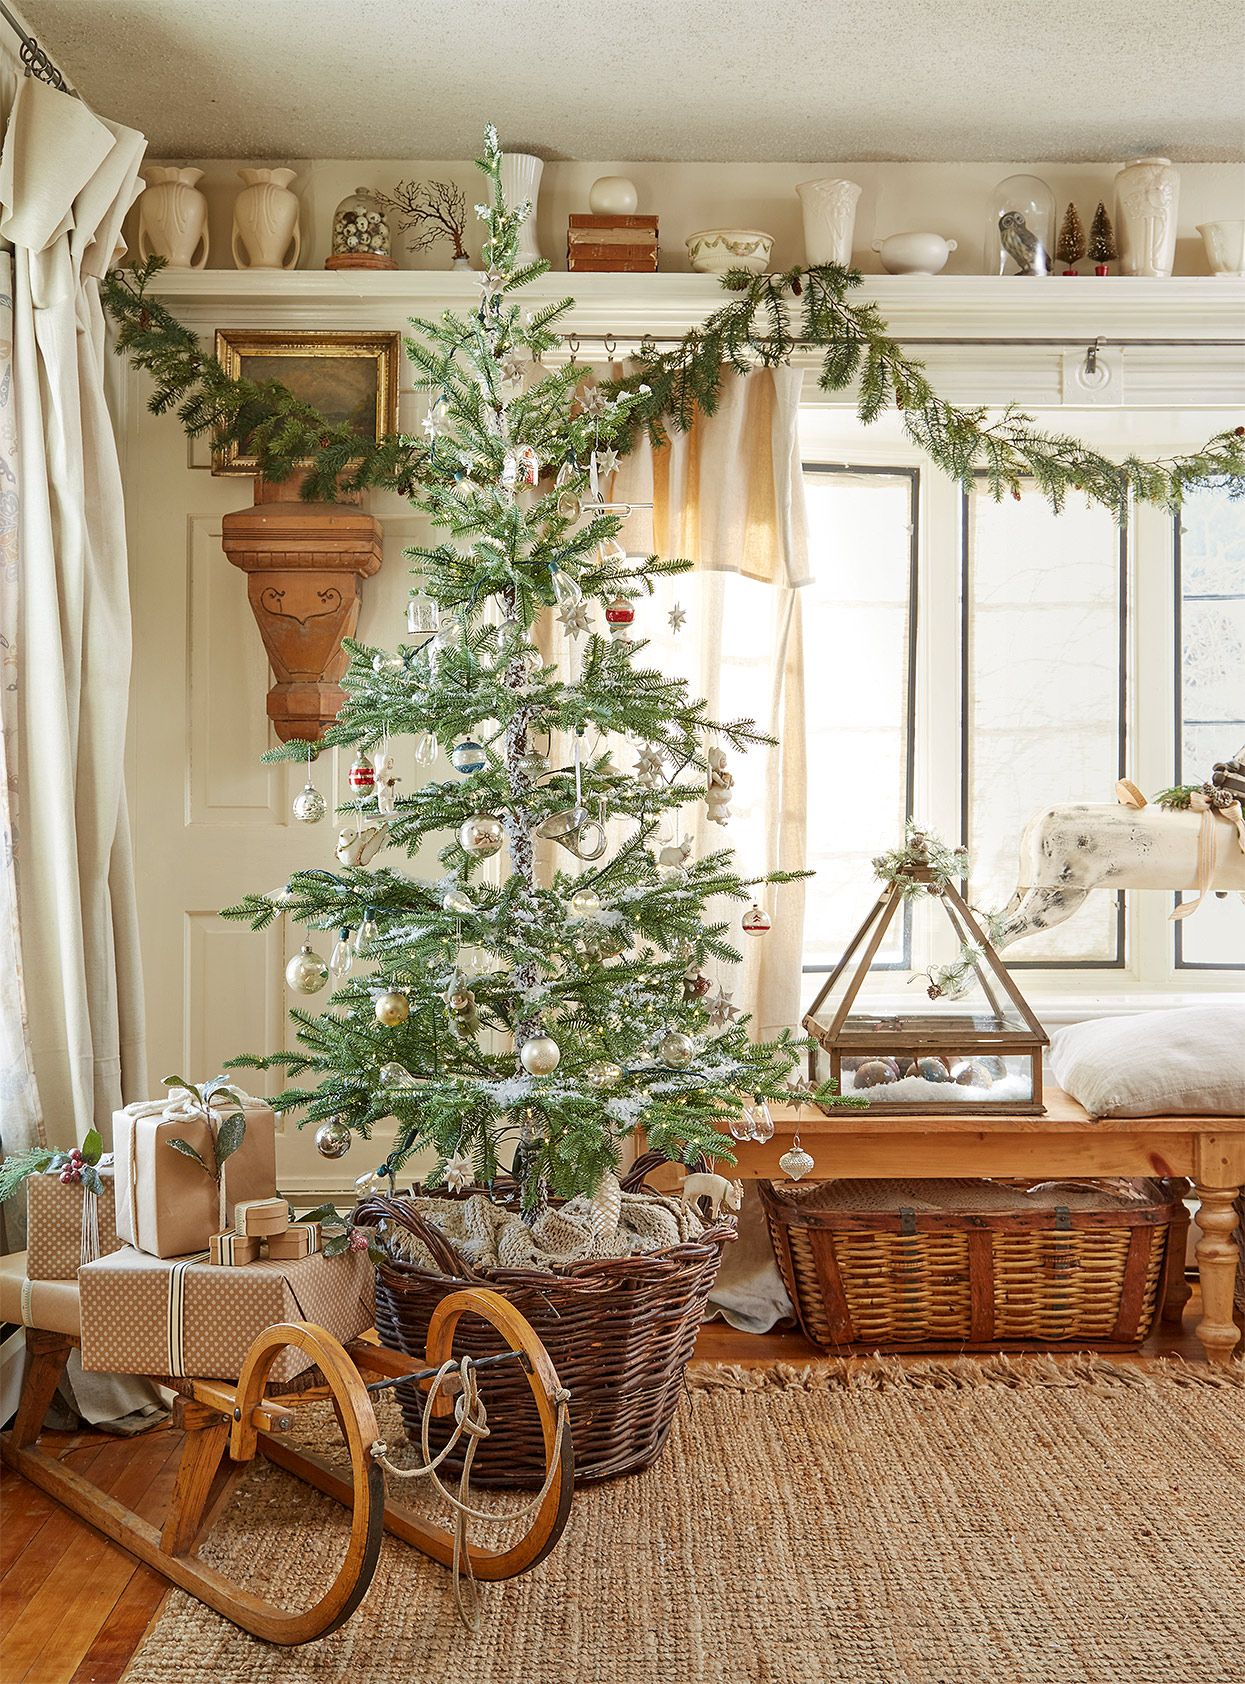 23 Farmhouse Christmas Decor Ideas To Make Your Space More Festive Farmhouse Christmas Decor Holiday Decor Christmas Decorations Living Room